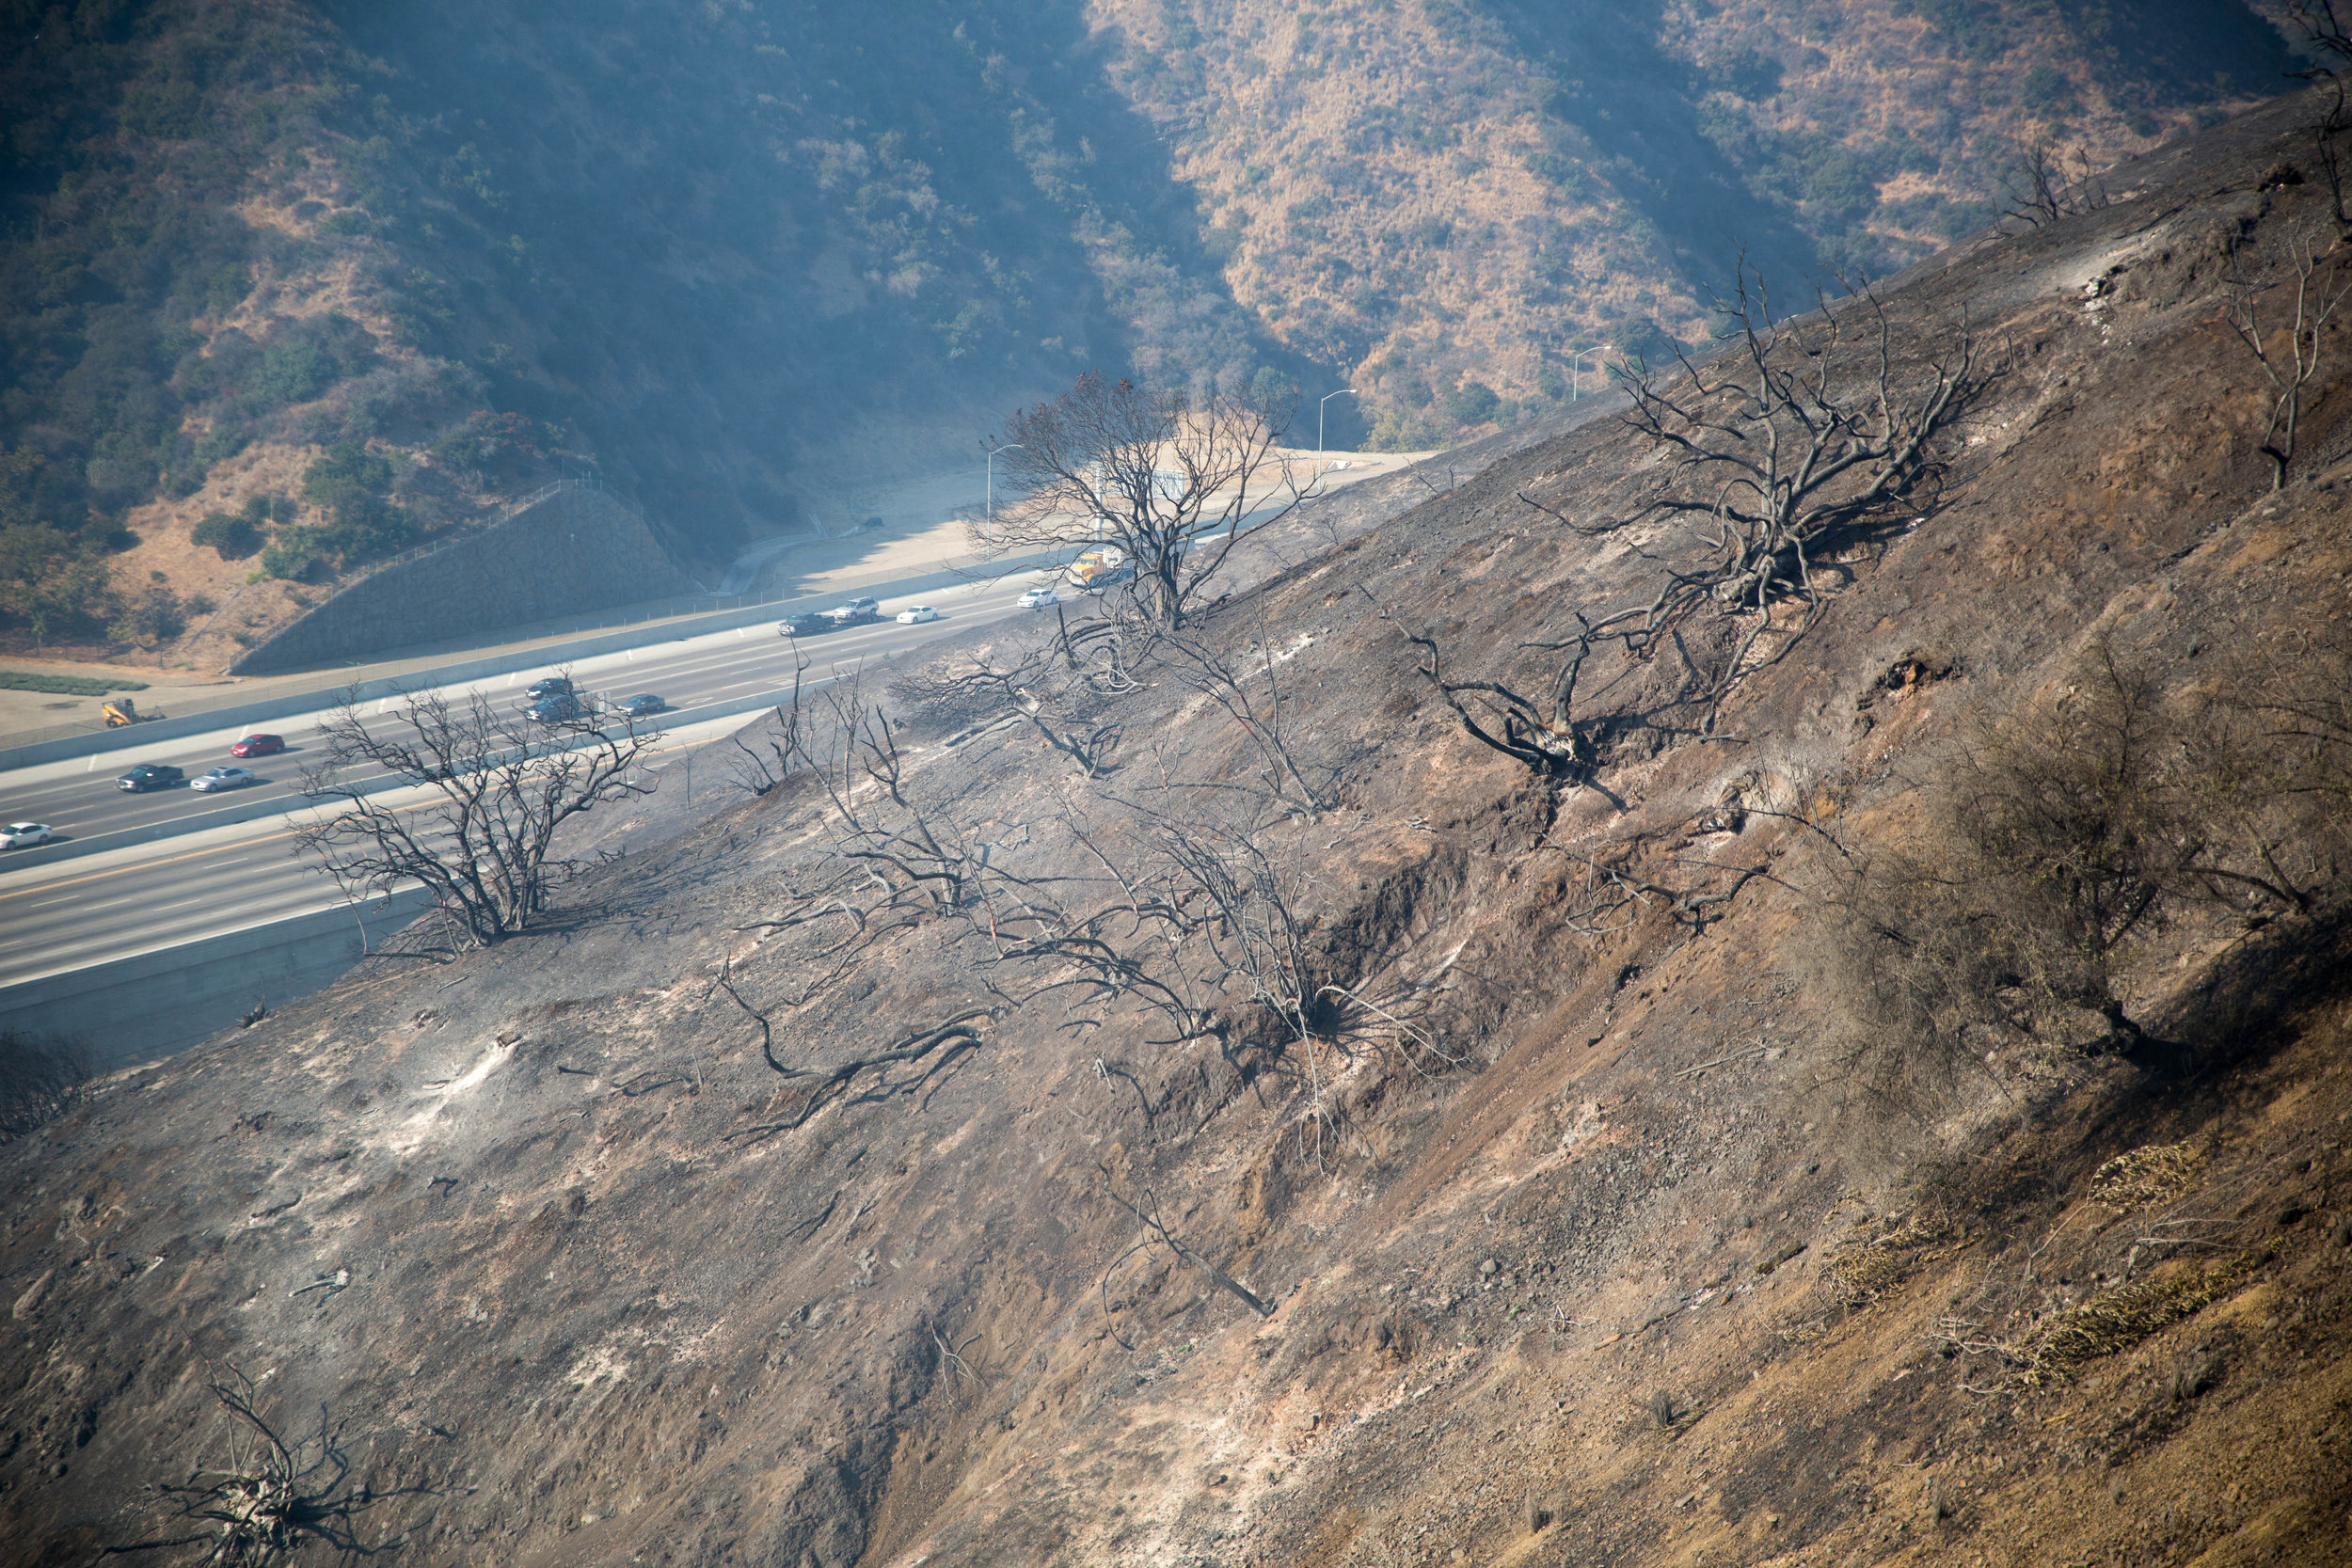 The 405 freeway is opened after the Skirball Fire burns through the hillside of Bel-Air near Getty View Park on Wednesday, December 6, 2017 in Los Angeles, California. (Jose Lopez)